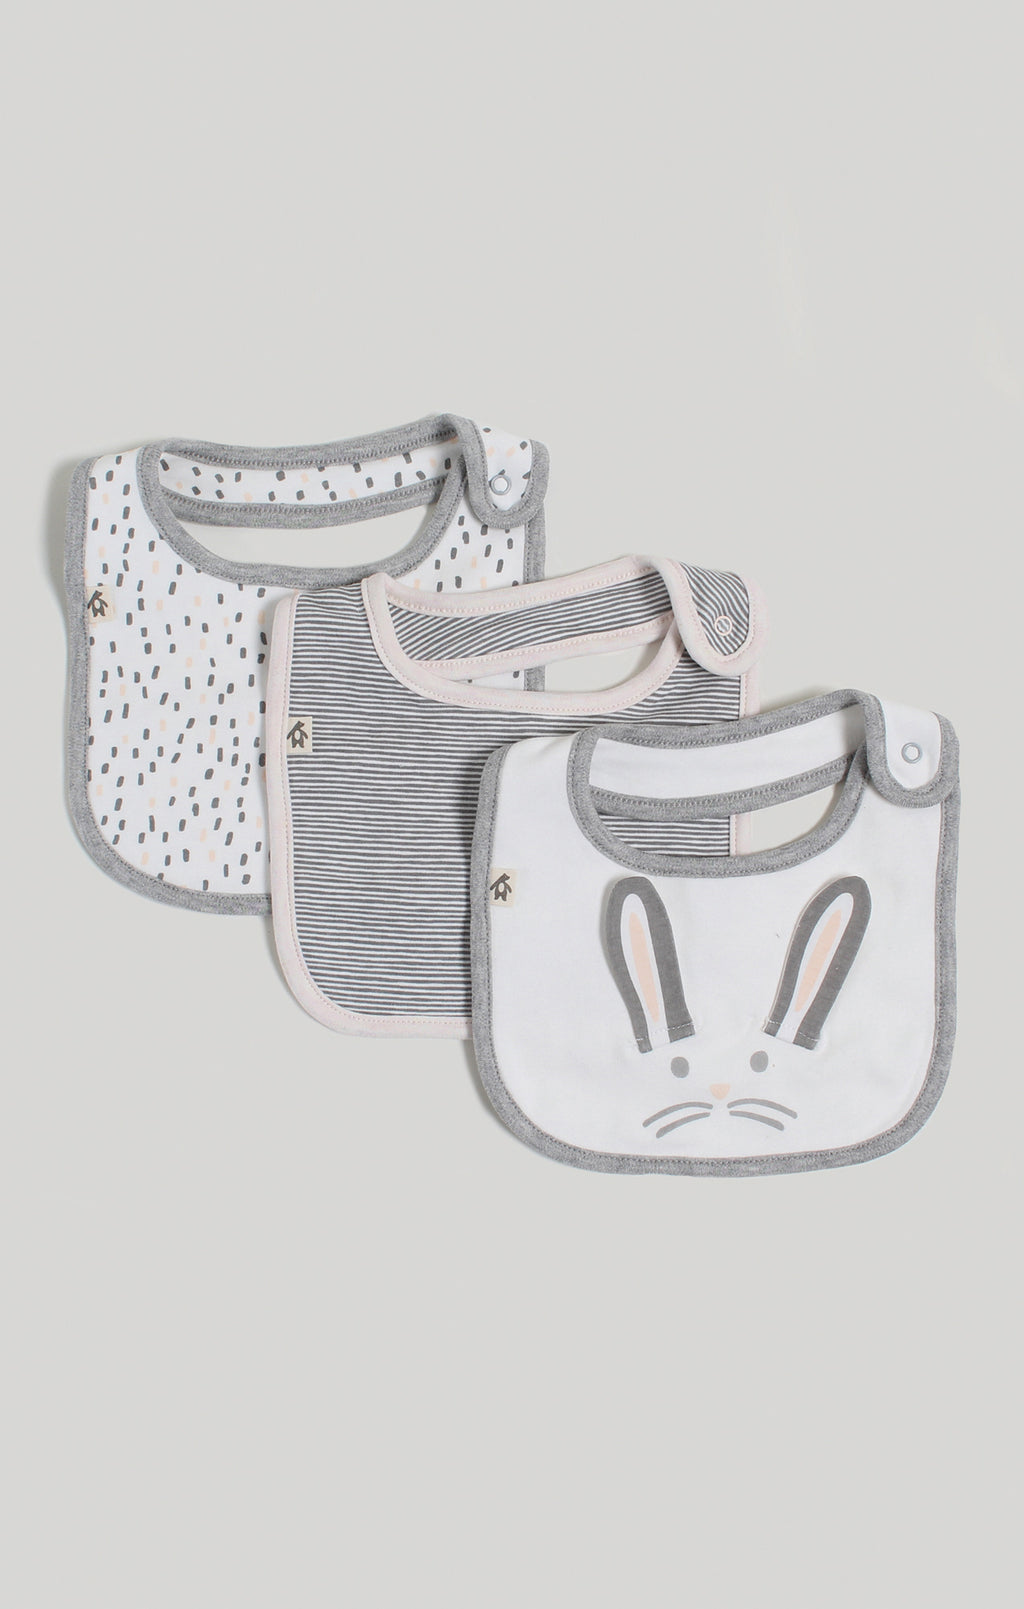 Bib - Baby Girl 3 Pack of Dribble Bibs | Baby Accessories